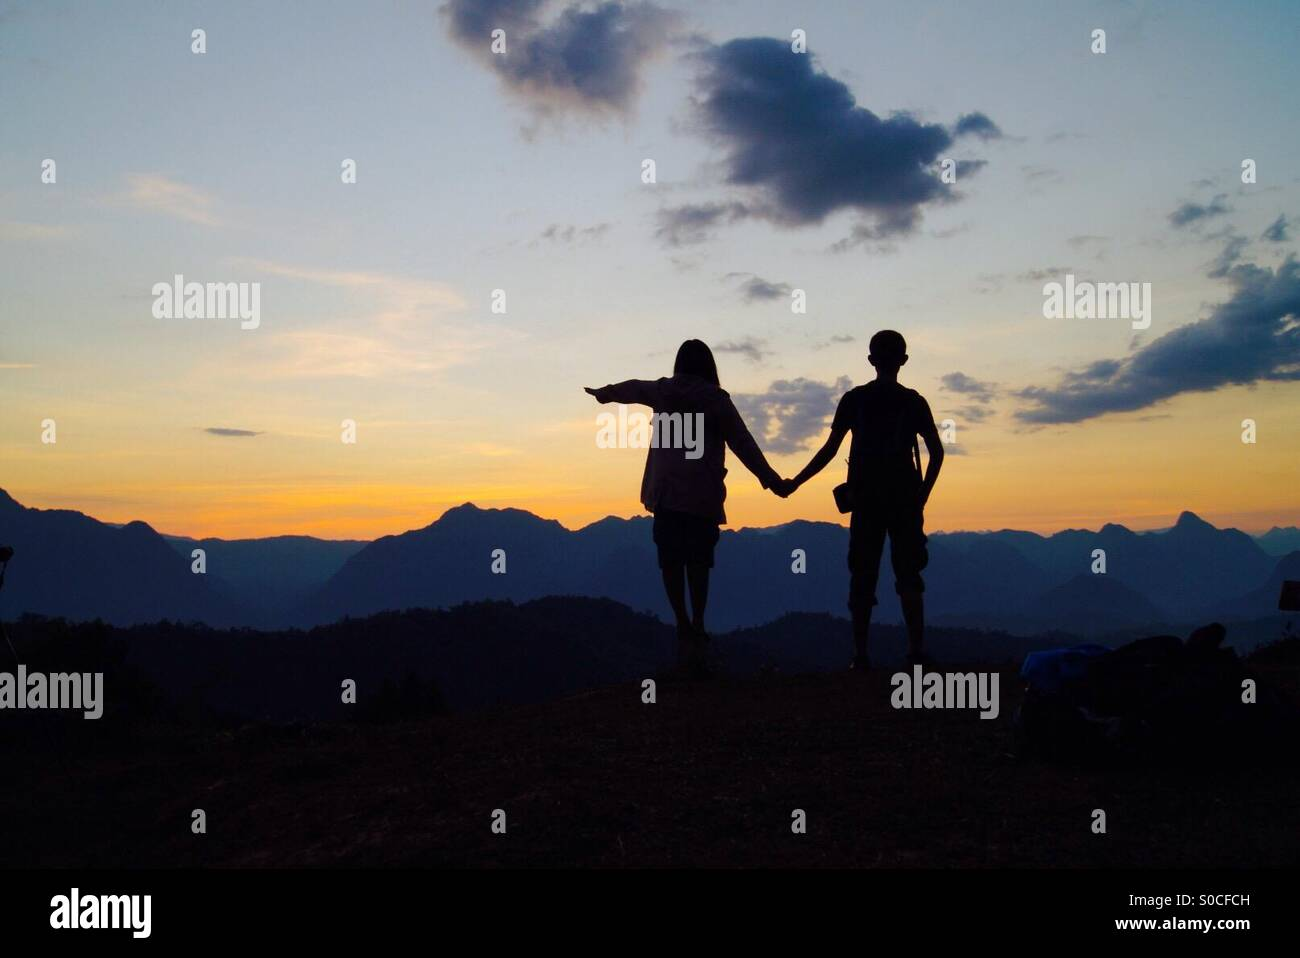 Love - Stock Image